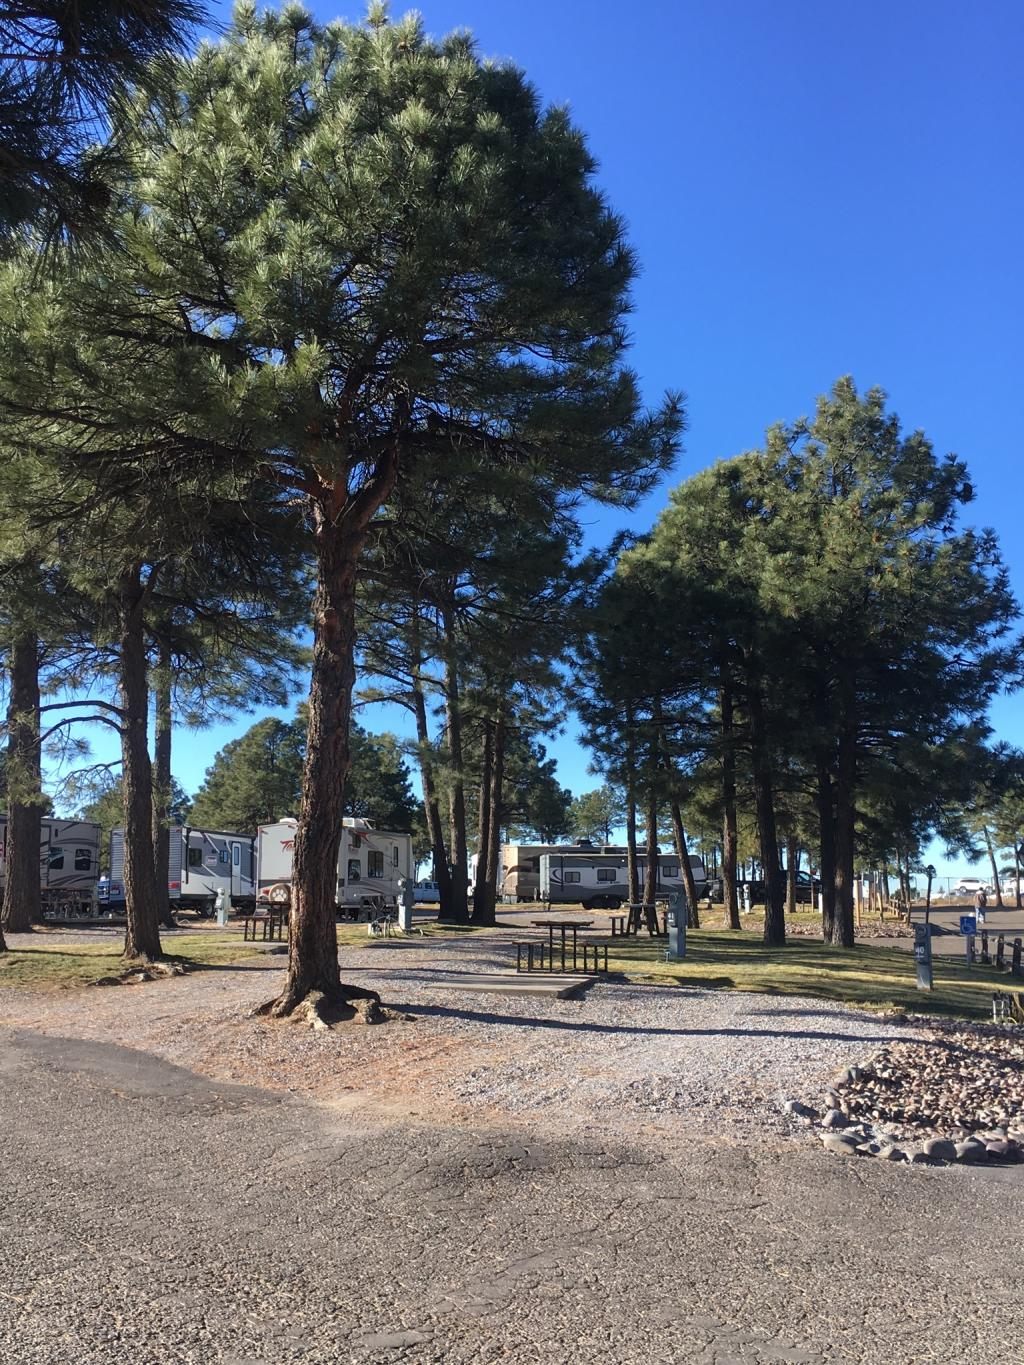 Black Barts Rv Park Flagstaff Arizona